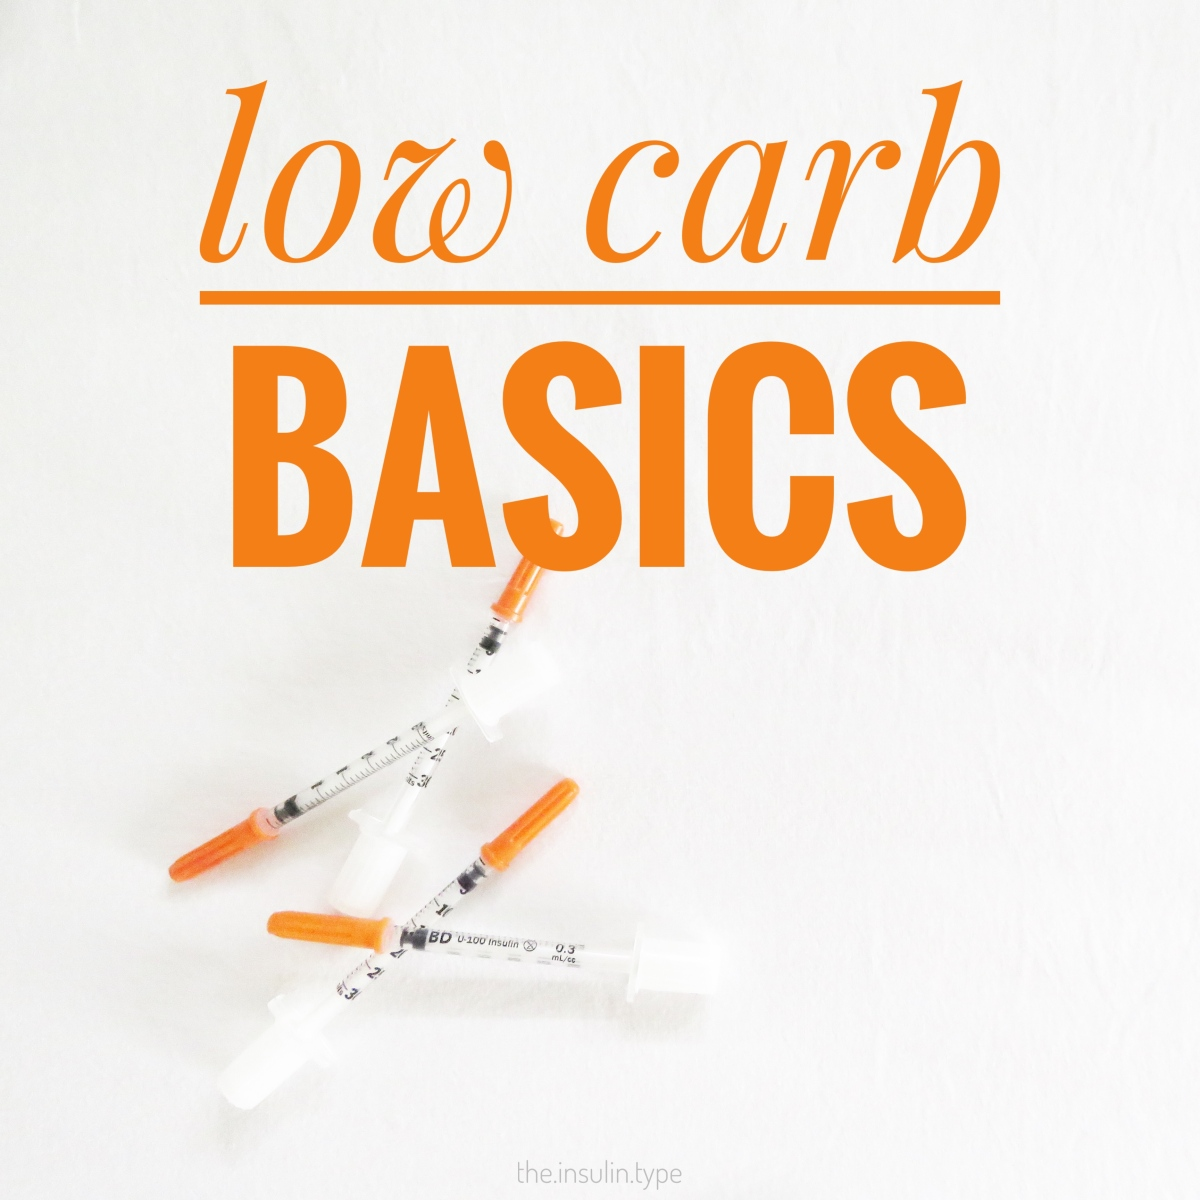 Basics of Low Carb and Type 1 Diabetes